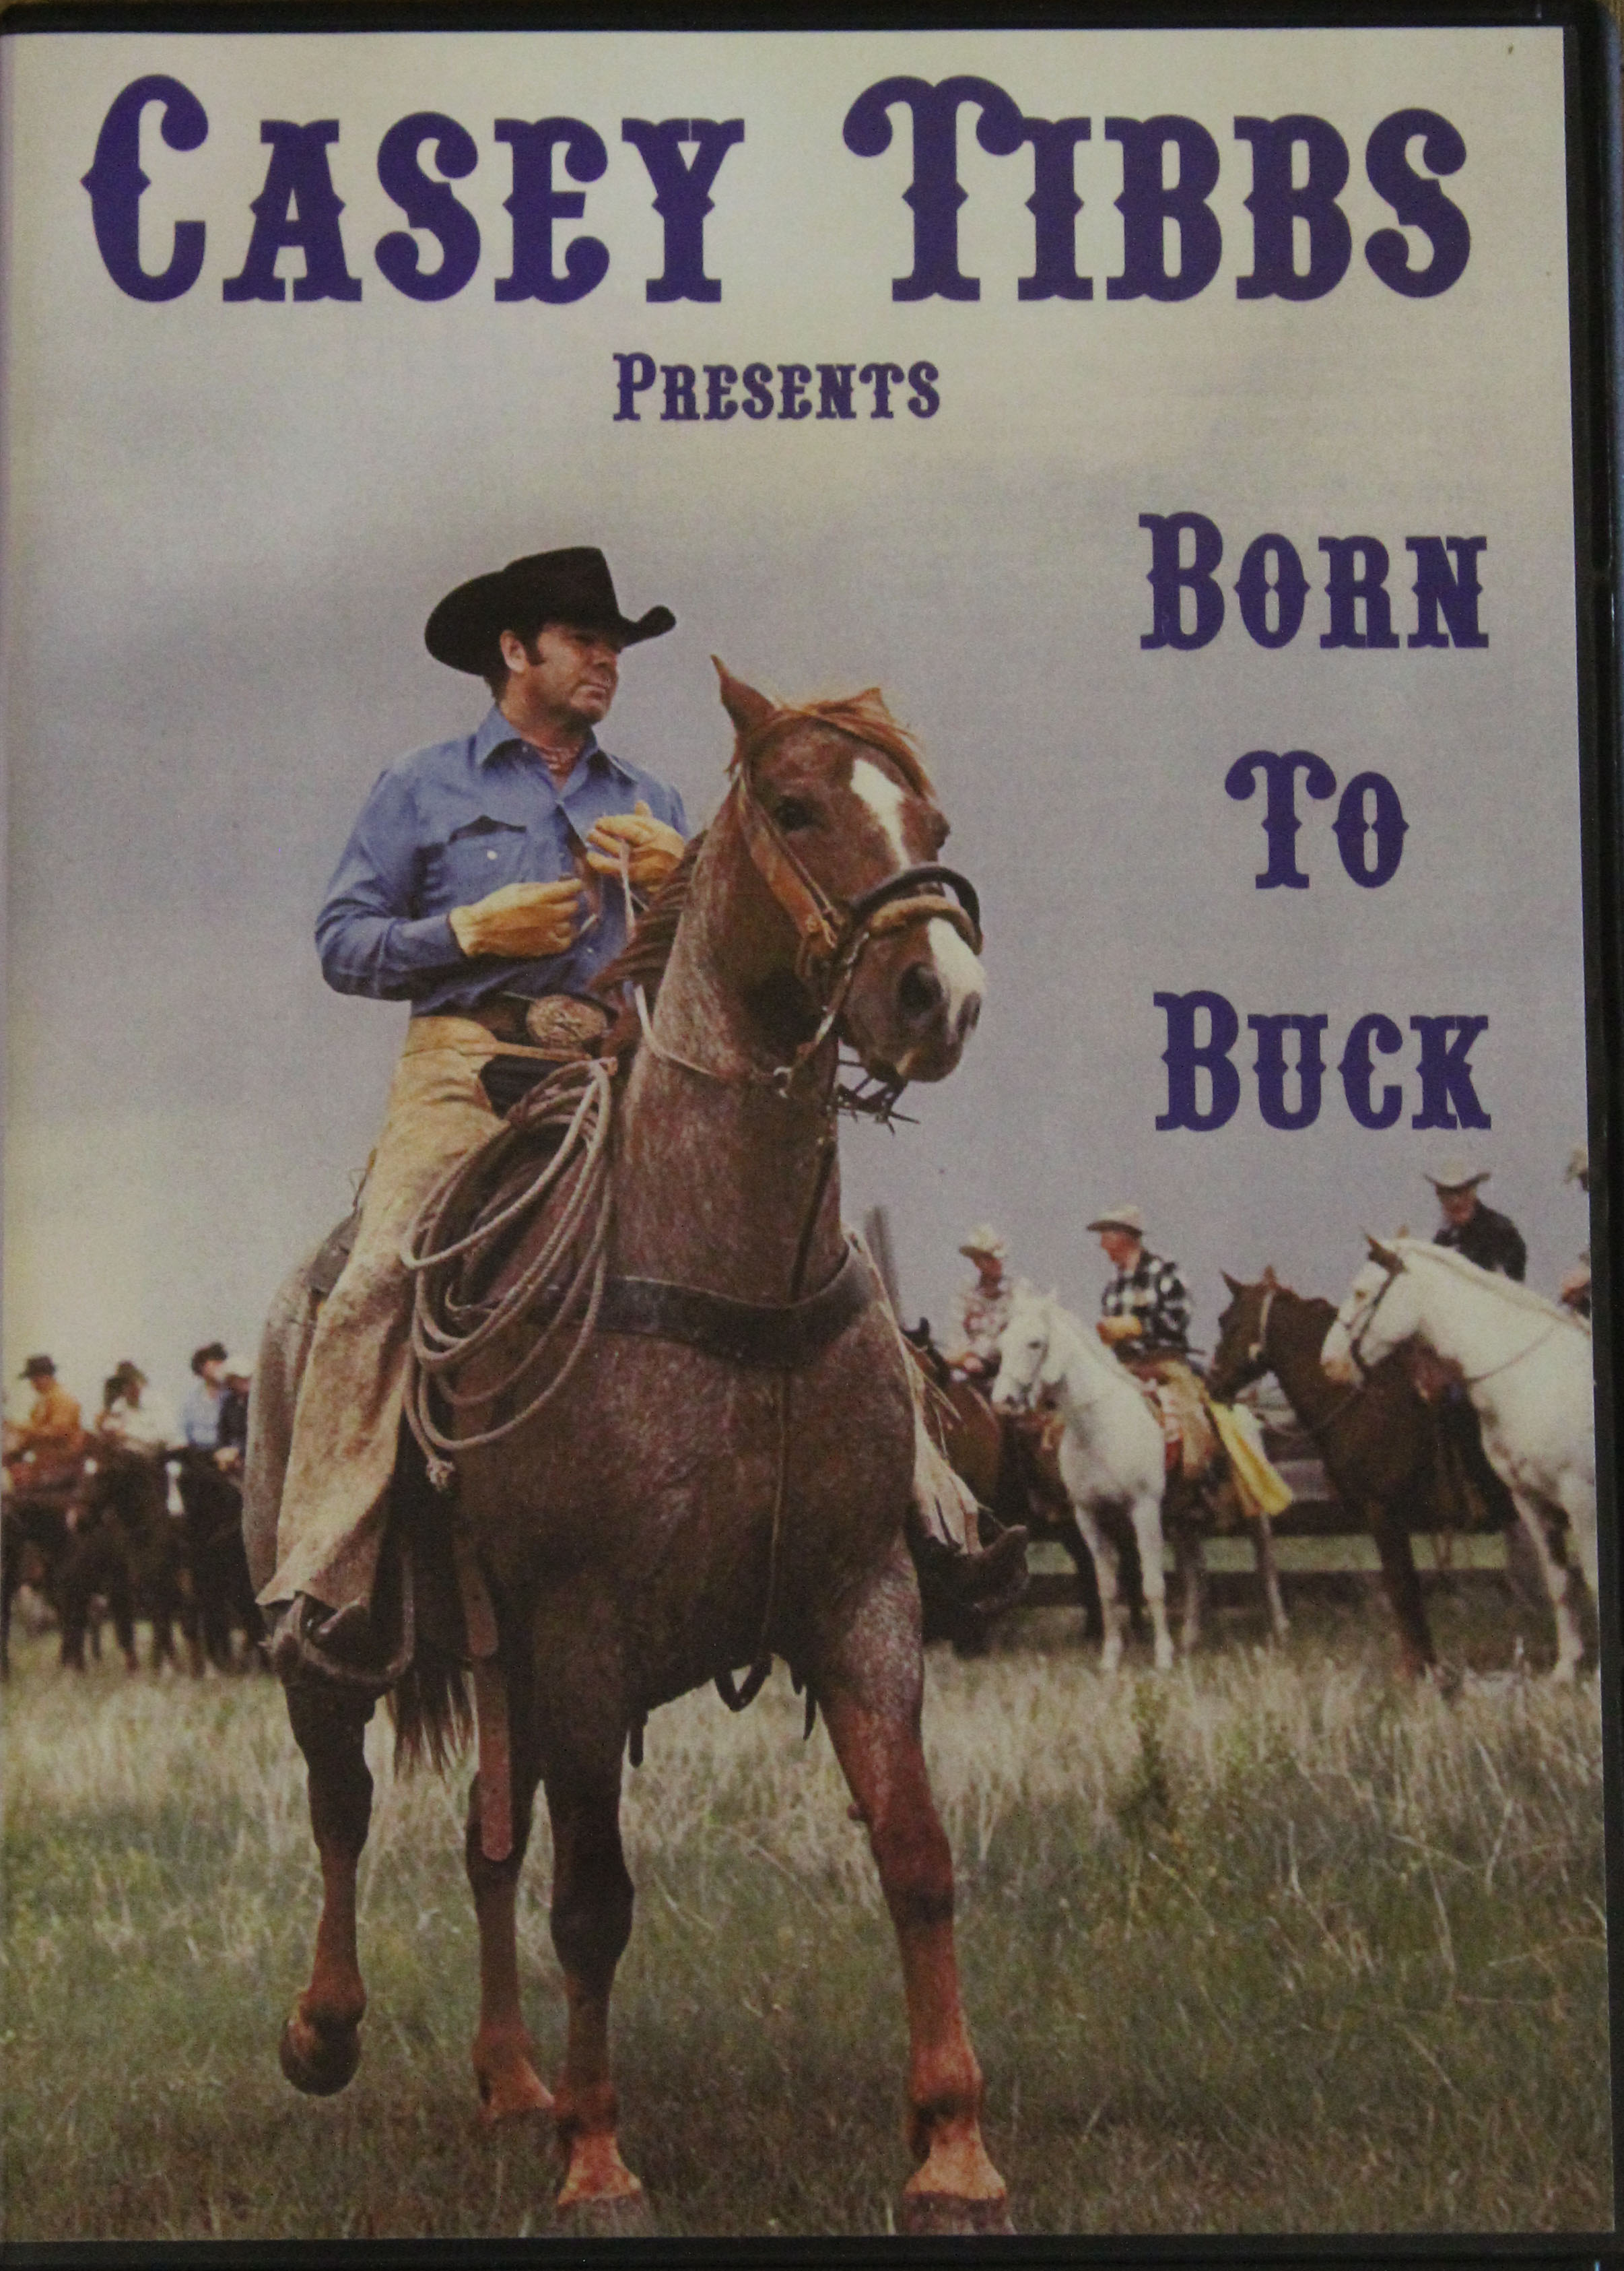 born to buck movie